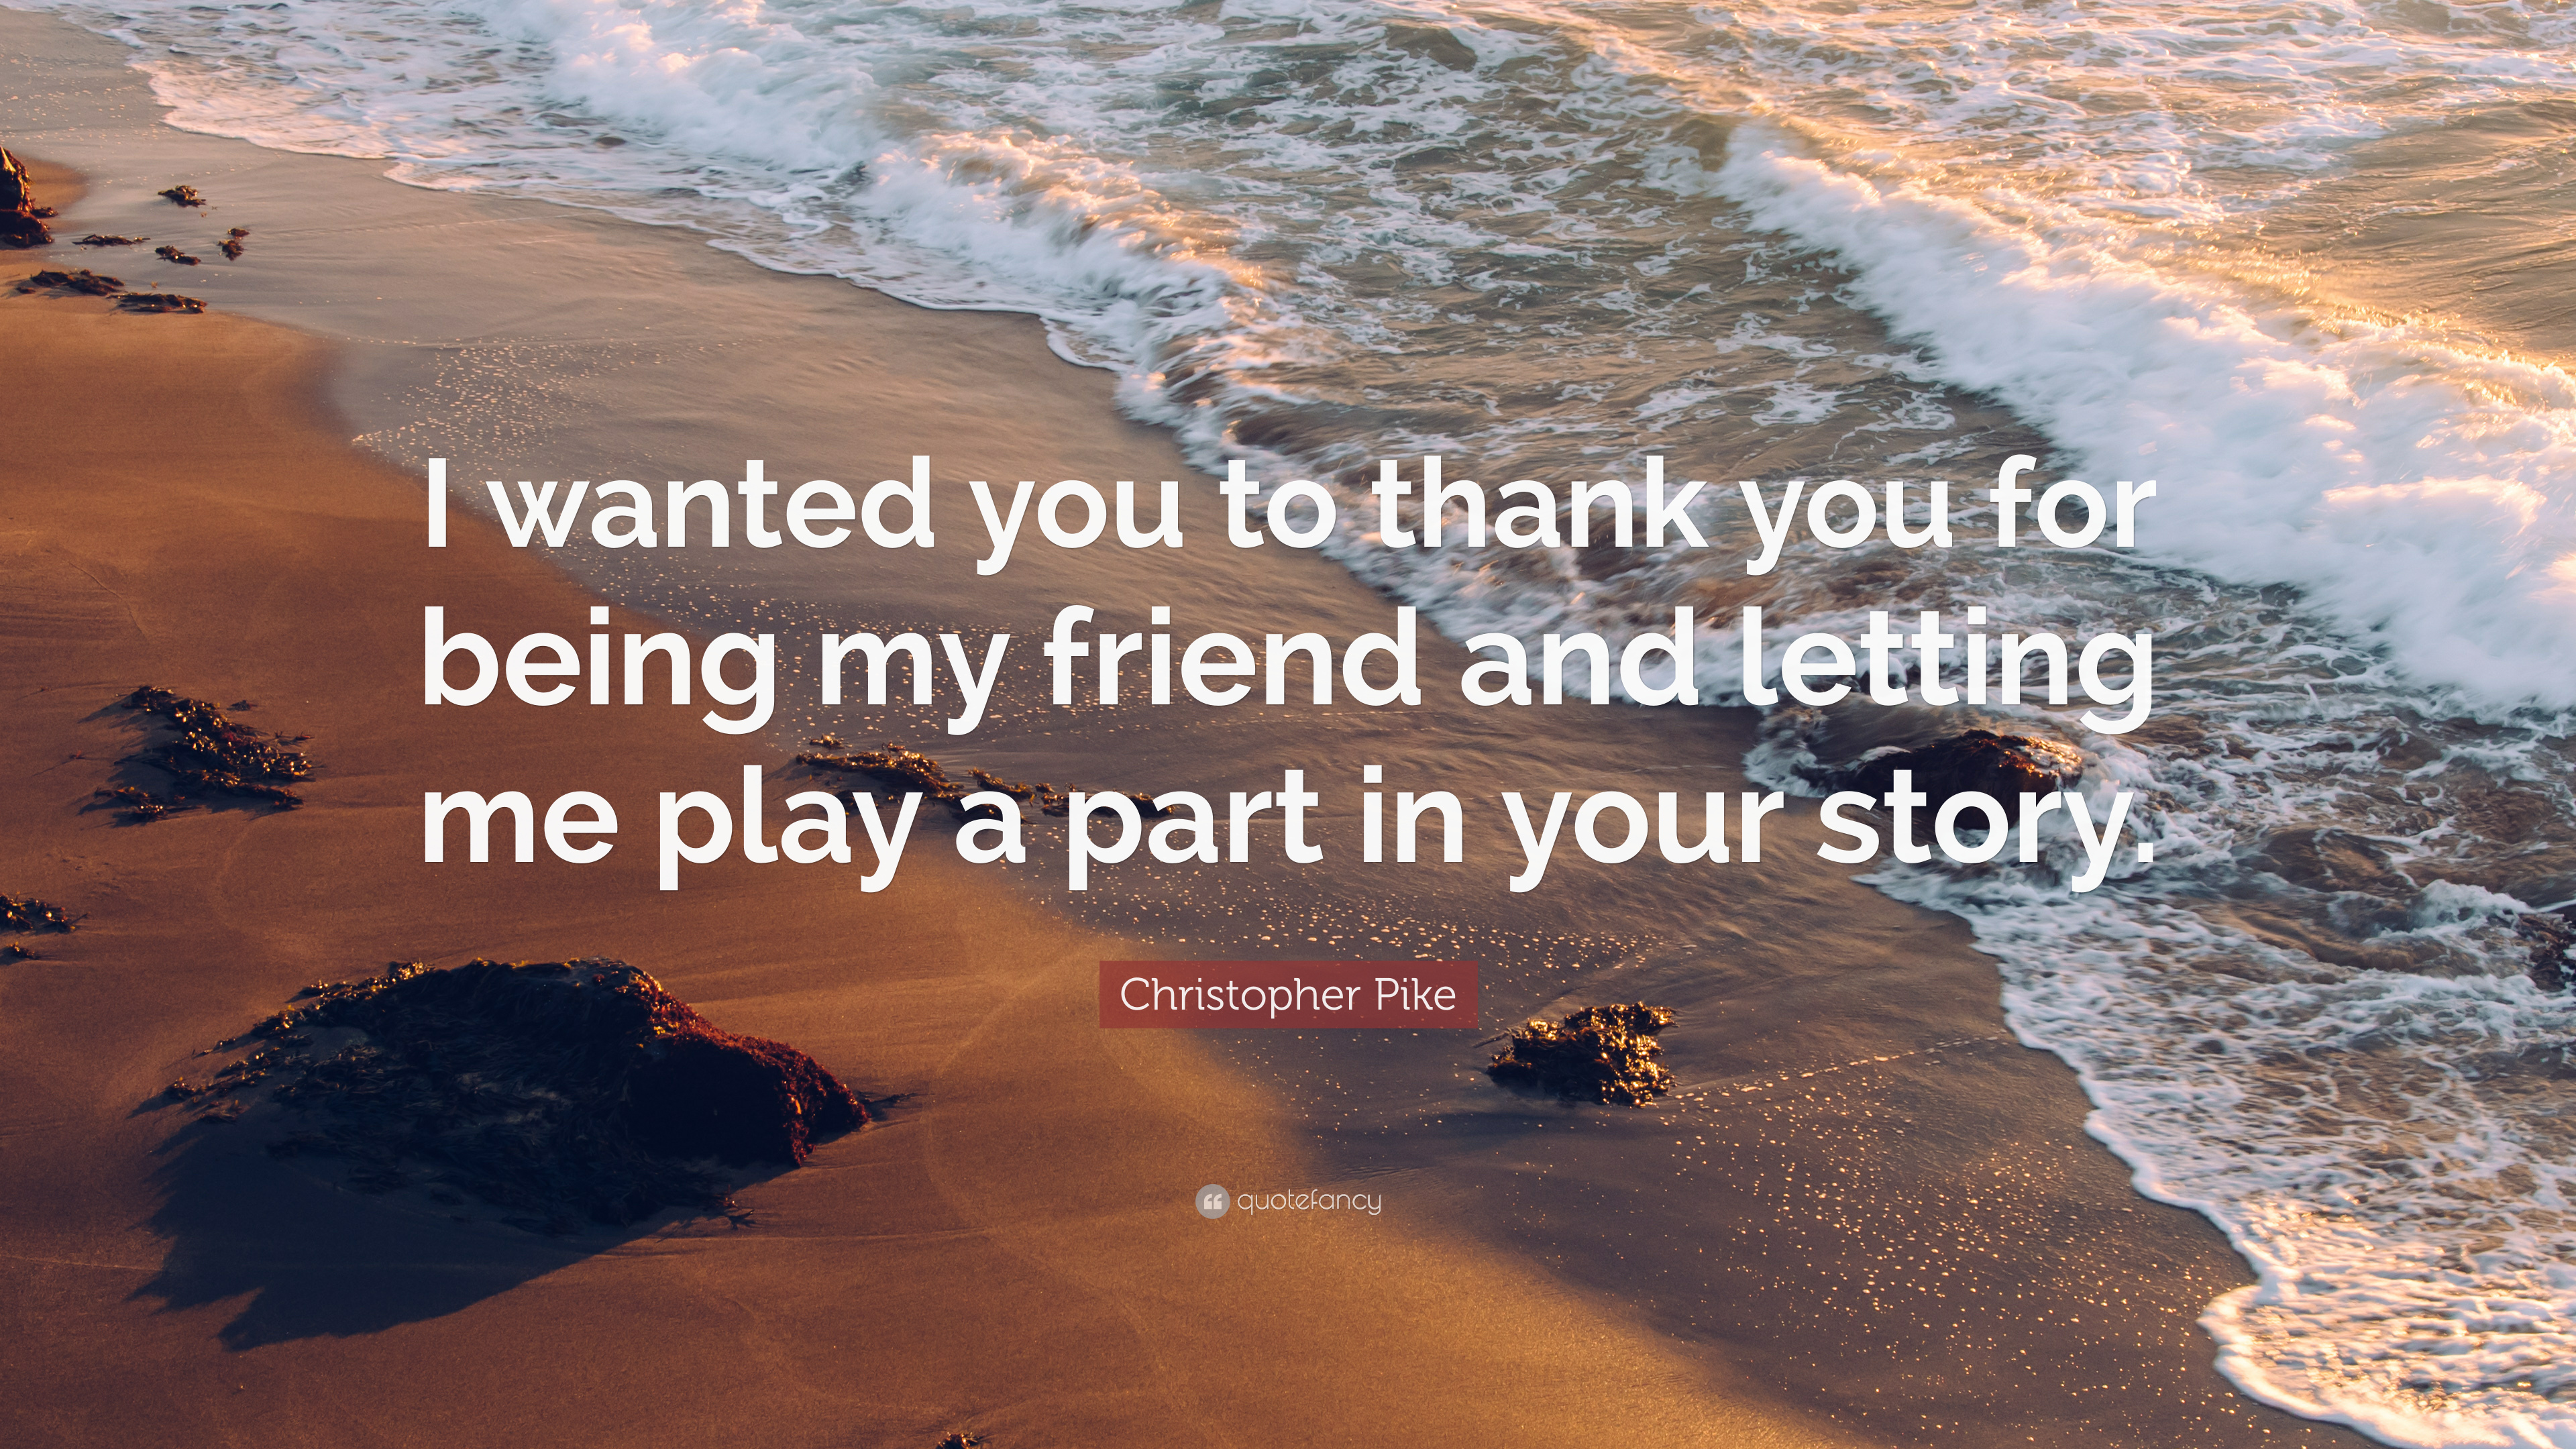 christopher pike quote i wanted you to thank you for being my friend and